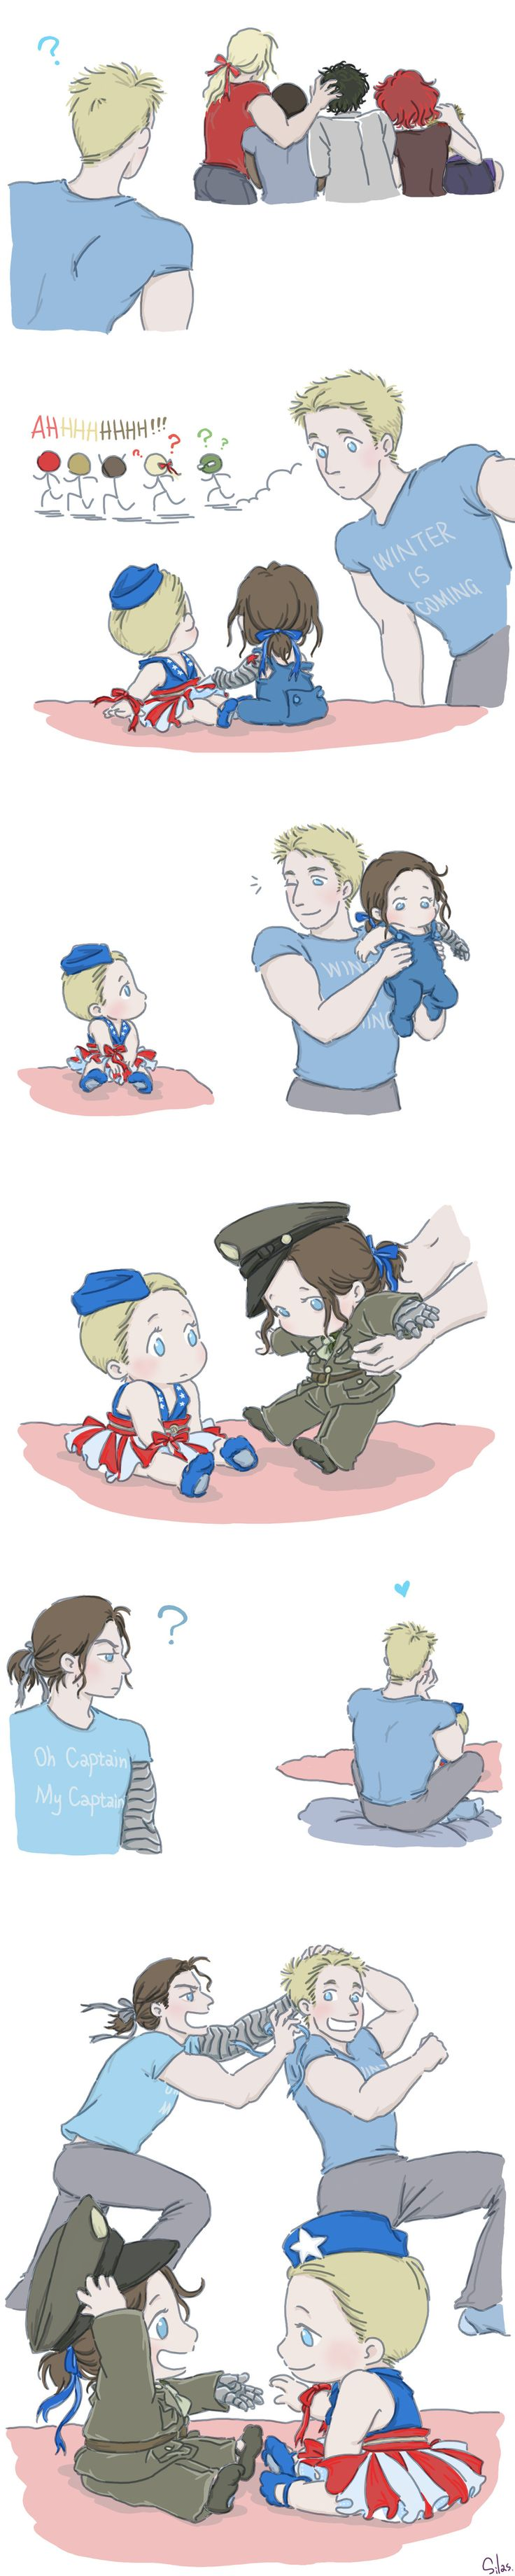 Steve and Bucky Babies: Ribbon 2 by SilasSamle. THIS IS SO ADORABLE I MAY DIE